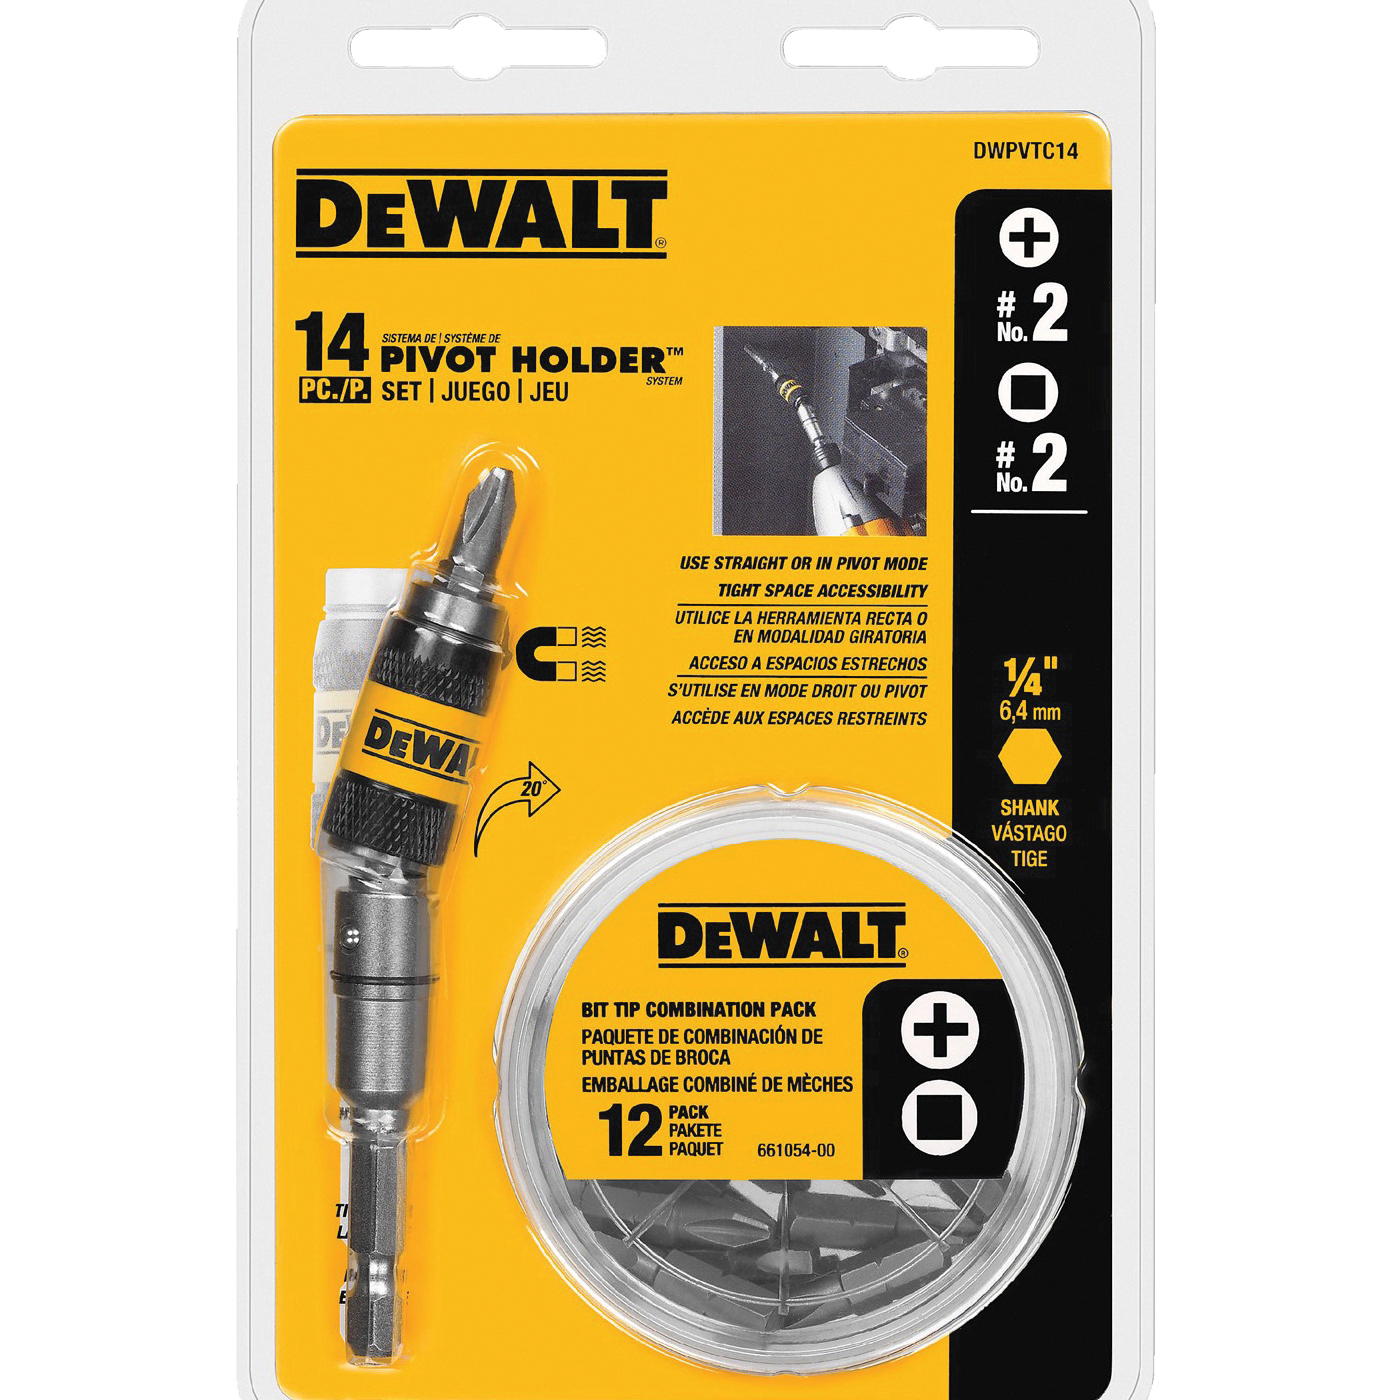 Picture of DeWALT DWPVTC14 Pivot Holder Set, #2 Drive, Phillips/Square Drive, 1/4 in Shank, Hex Shank, Stainless Steel